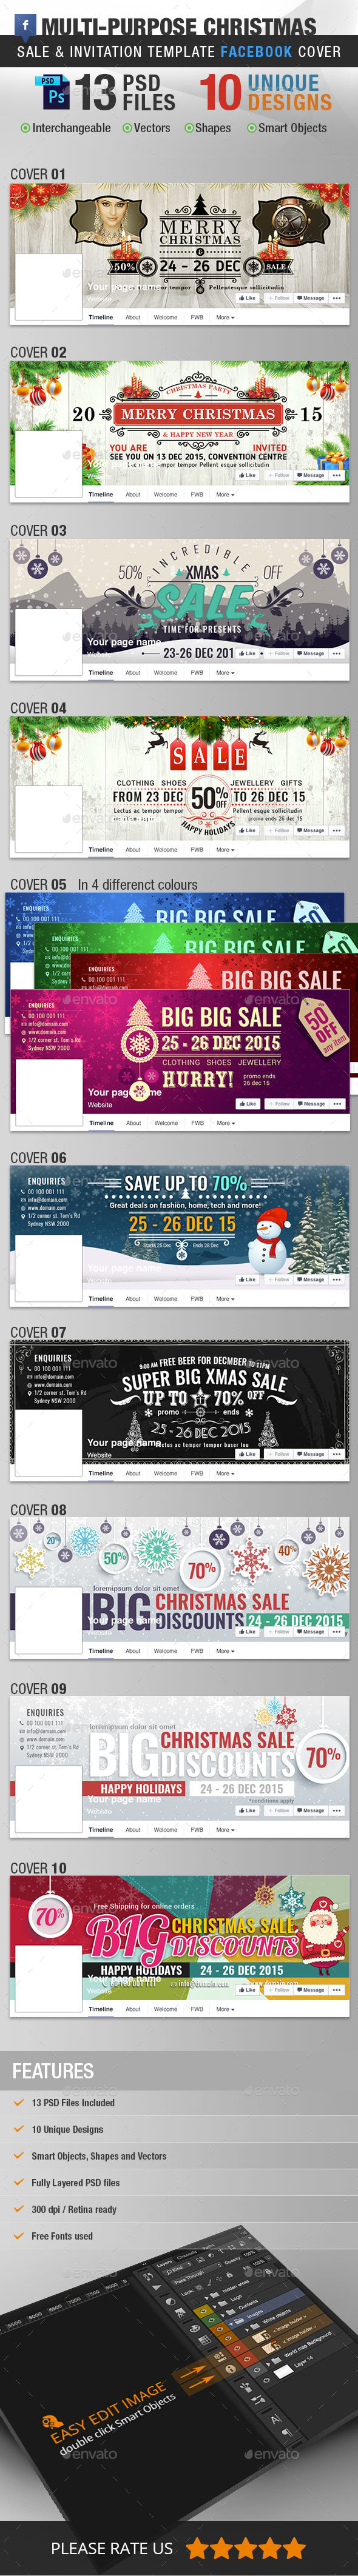 Multi-purpose Christmas Bundle Facebook Cover - Facebook Timeline Covers Social Media